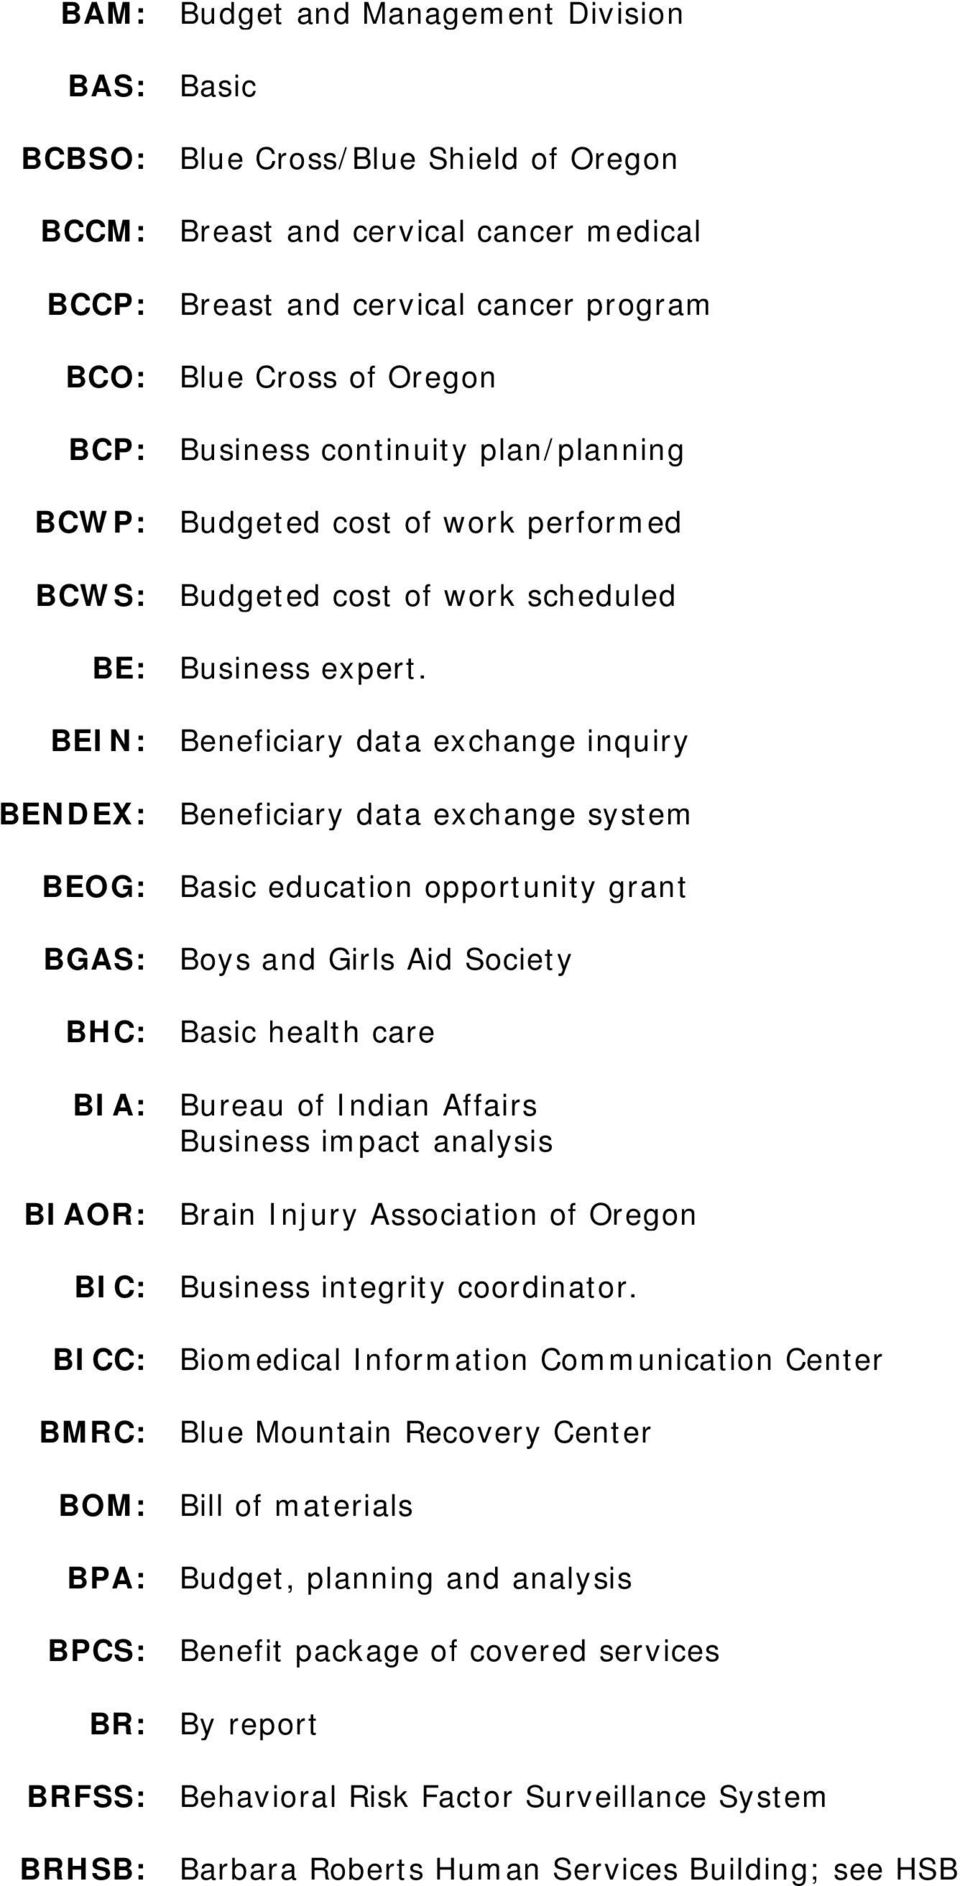 BEIN: Beneficiary data exchange inquiry BENDEX: Beneficiary data exchange system BEOG: Basic education opportunity grant BGAS: Boys and Girls Aid Society BHC: Basic health care BIA: Bureau of Indian